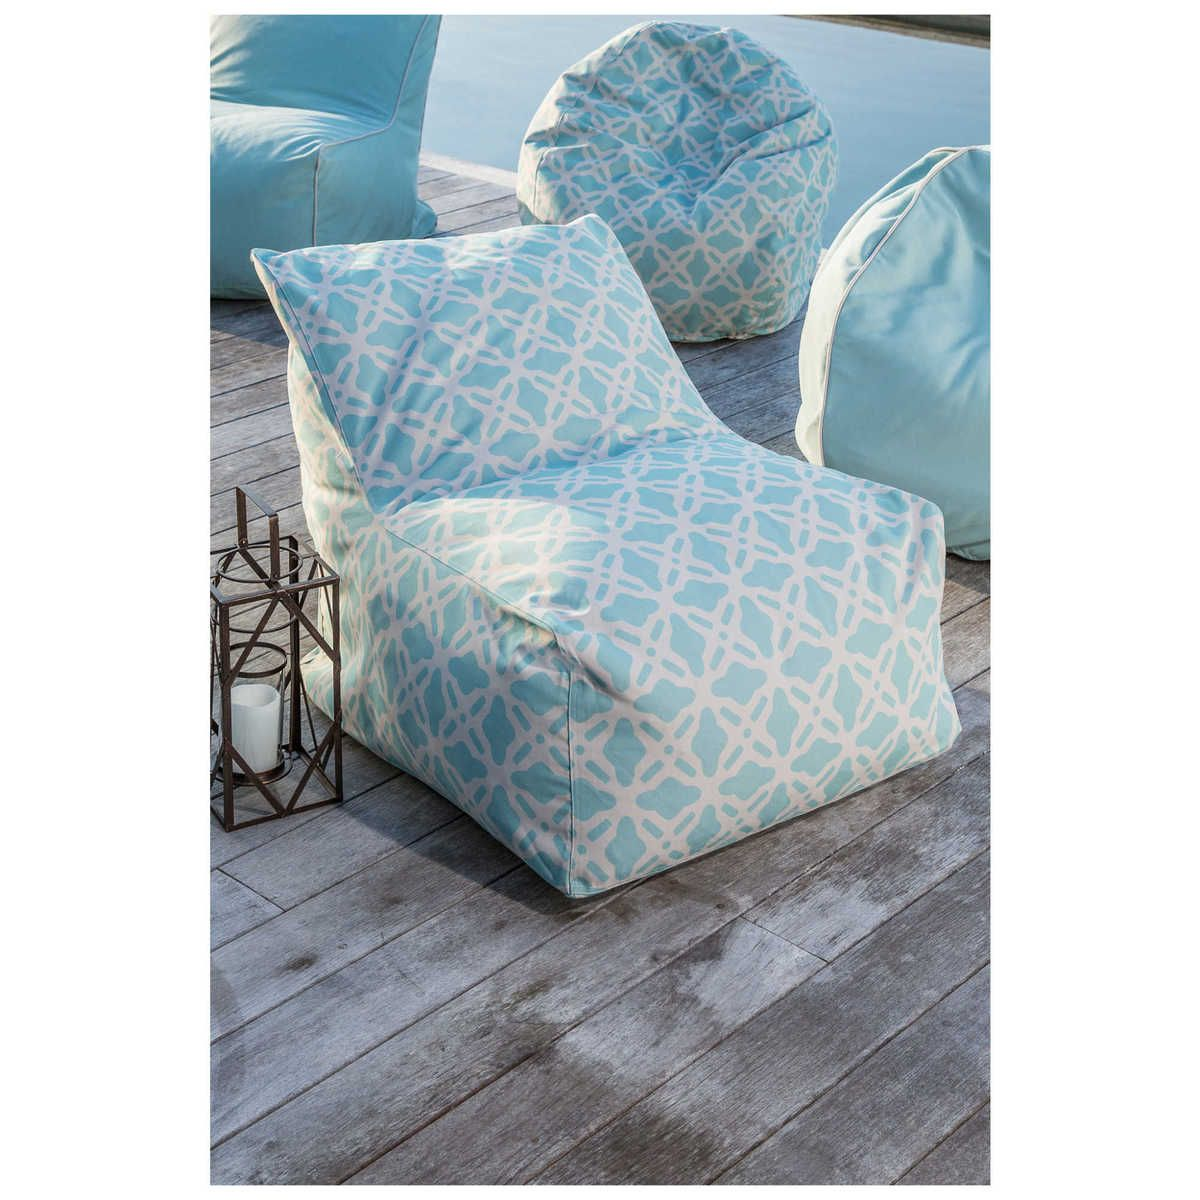 Remarkable Riviera Bean Bag Chair Big W Outdoor Haven In 2019 Ocoug Best Dining Table And Chair Ideas Images Ocougorg